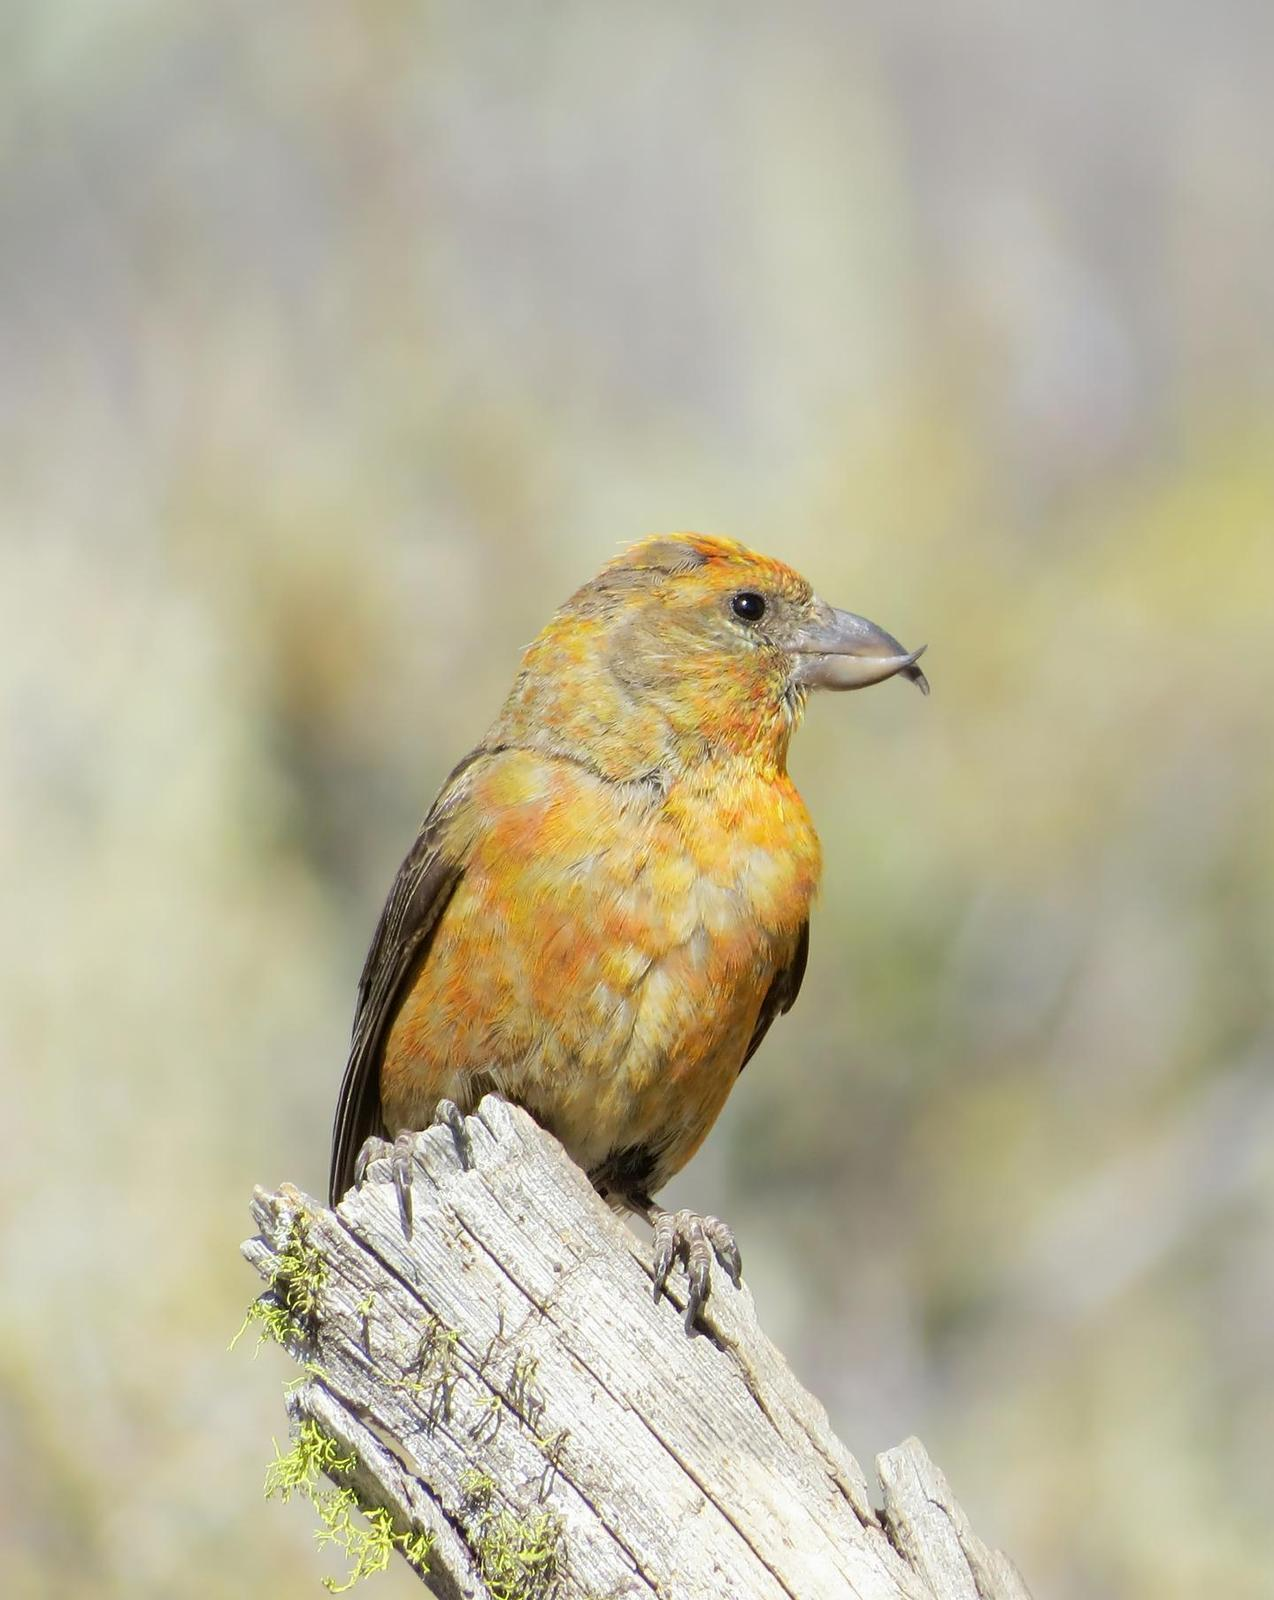 Red Crossbill Photo by Priscilla Sokolowski